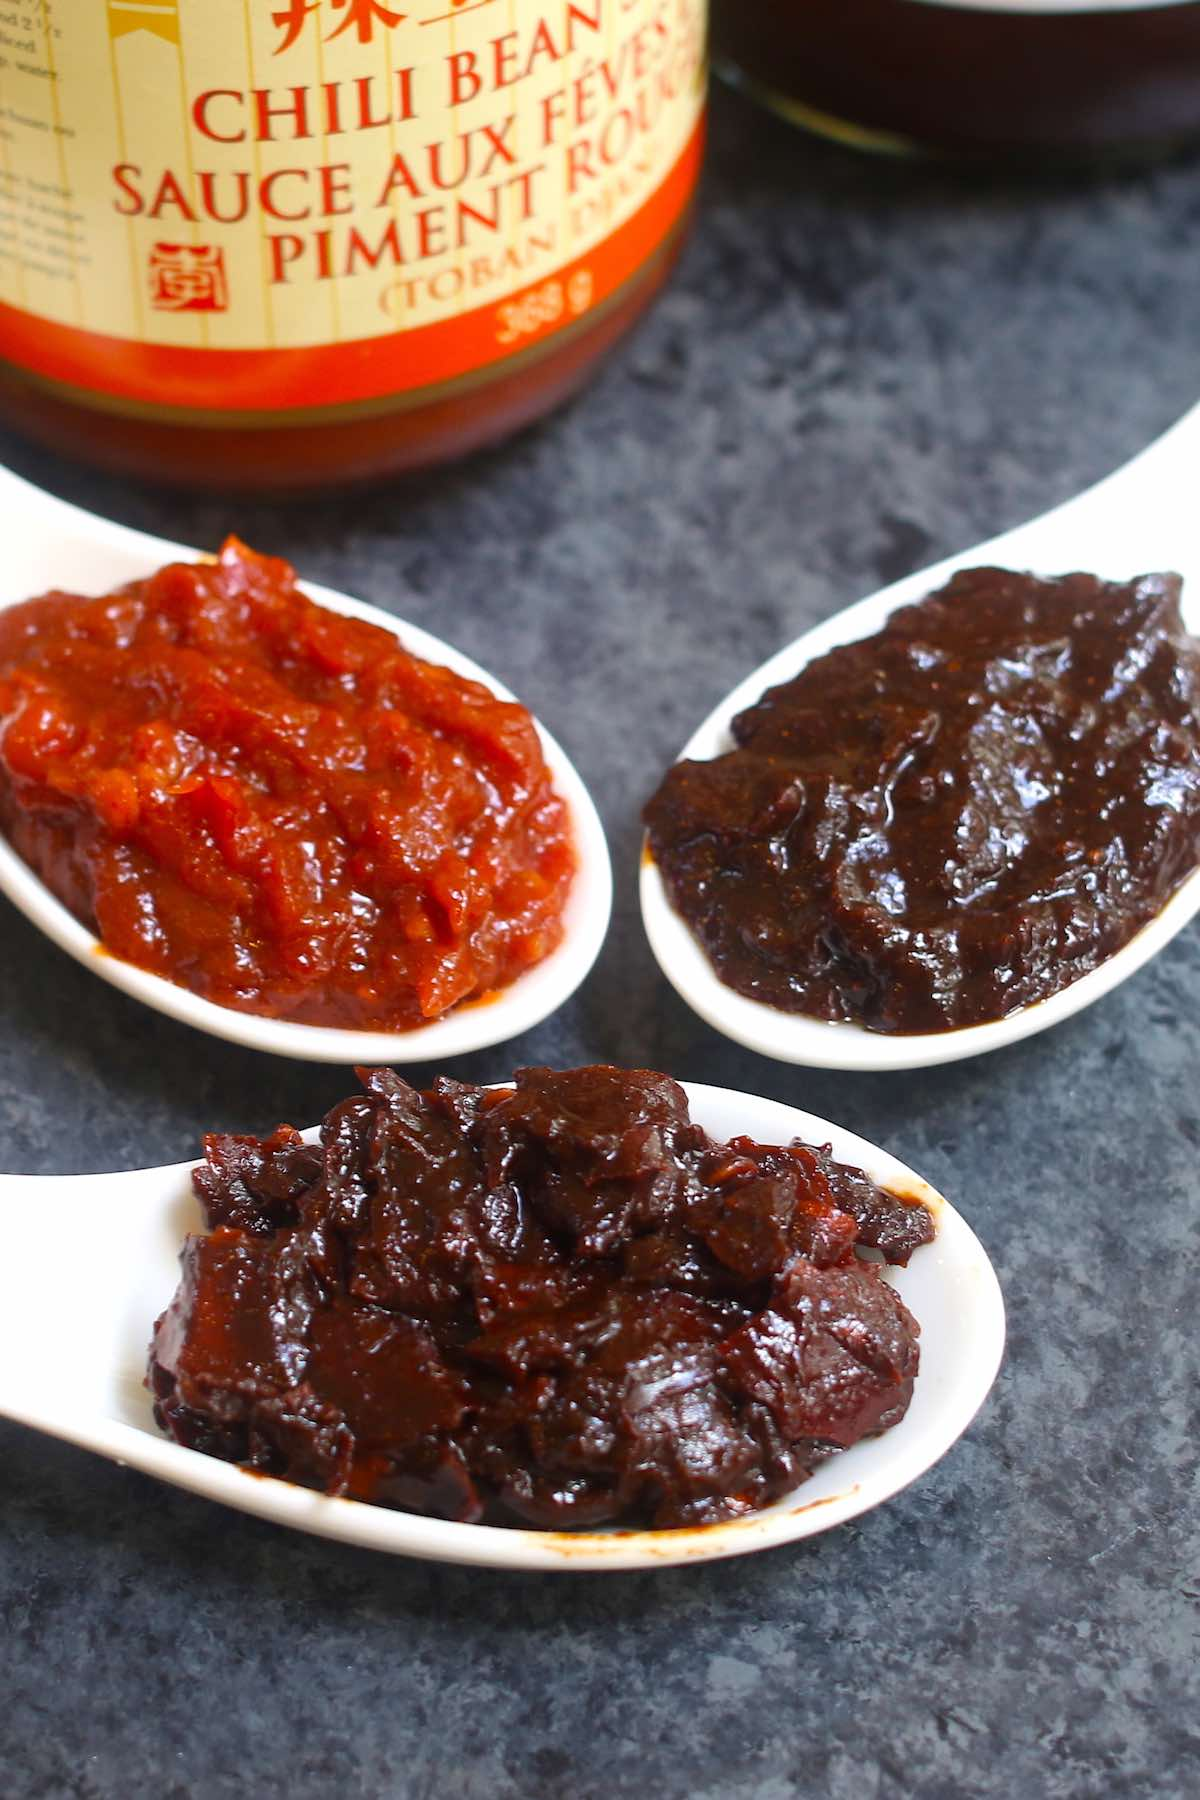 Doubanjiang is a Chinese bean paste with savory and sometimes spicy accents that makes many popular Chinese stir-fry recipes. Learn about the different types of Doubanjiang, how to use it, recommended brands, substitutes and more!